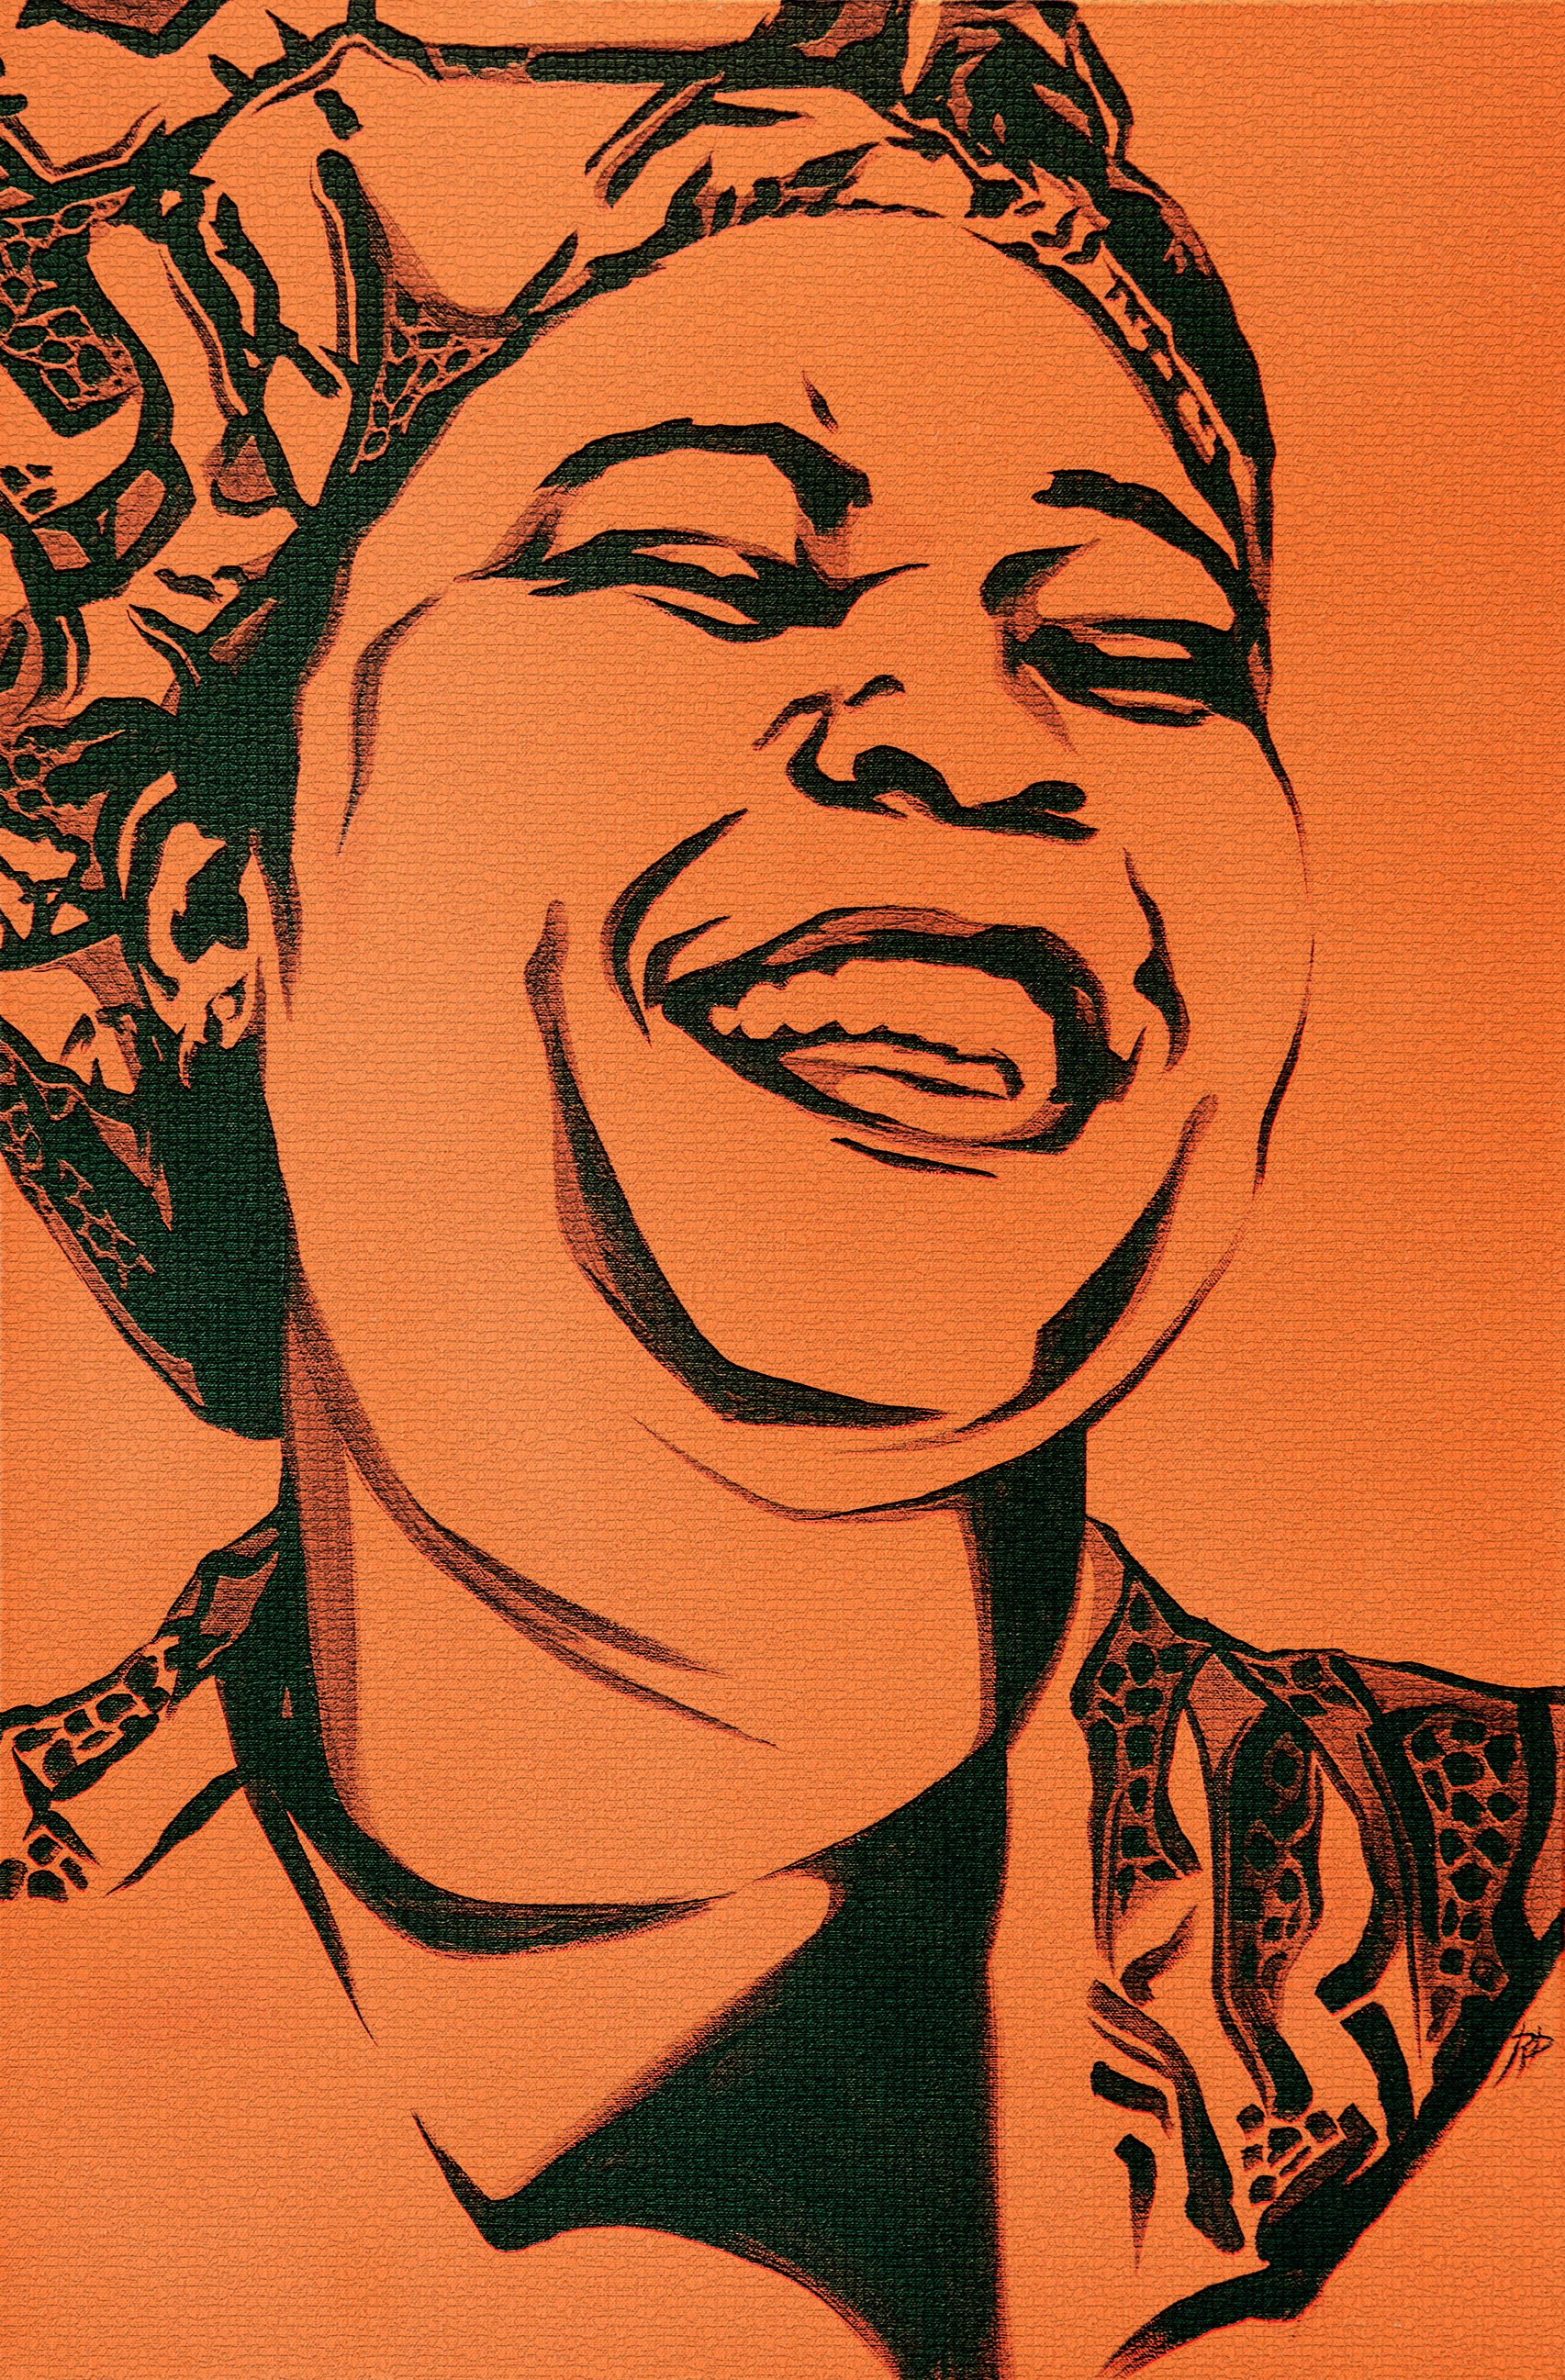 Leymah Gbowee: Signed Prints